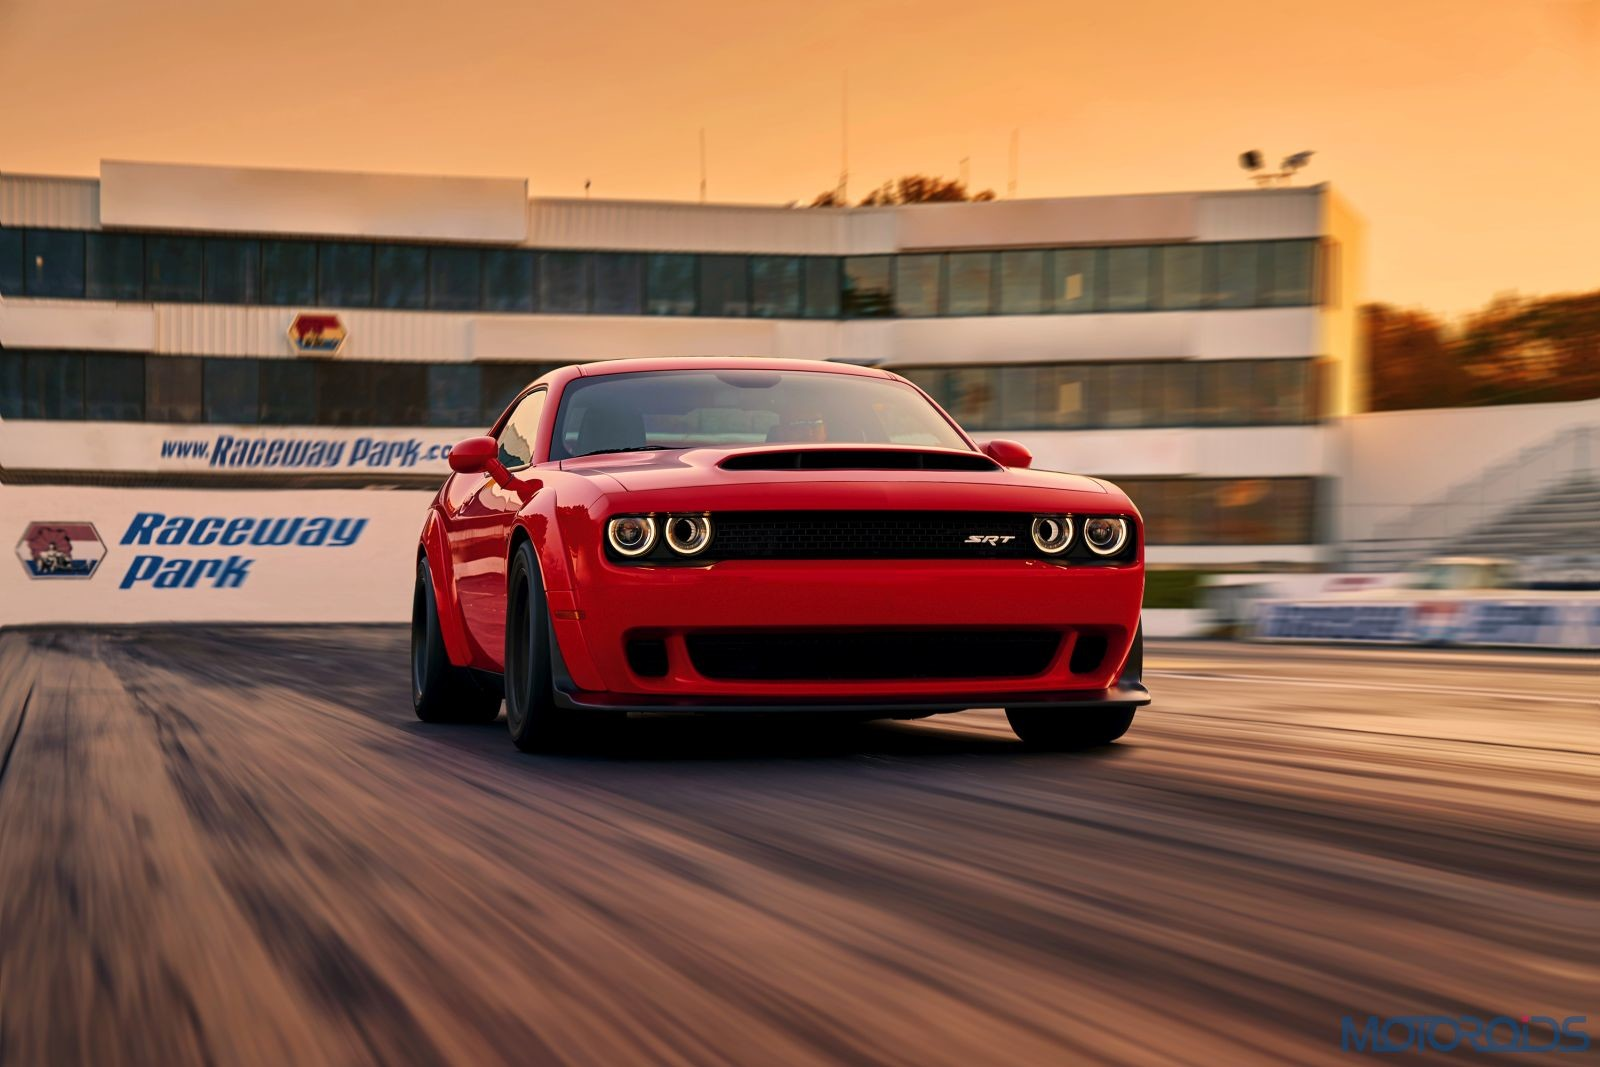 The 2018 Dodge Challenger SRT Demon with 840 HP is the